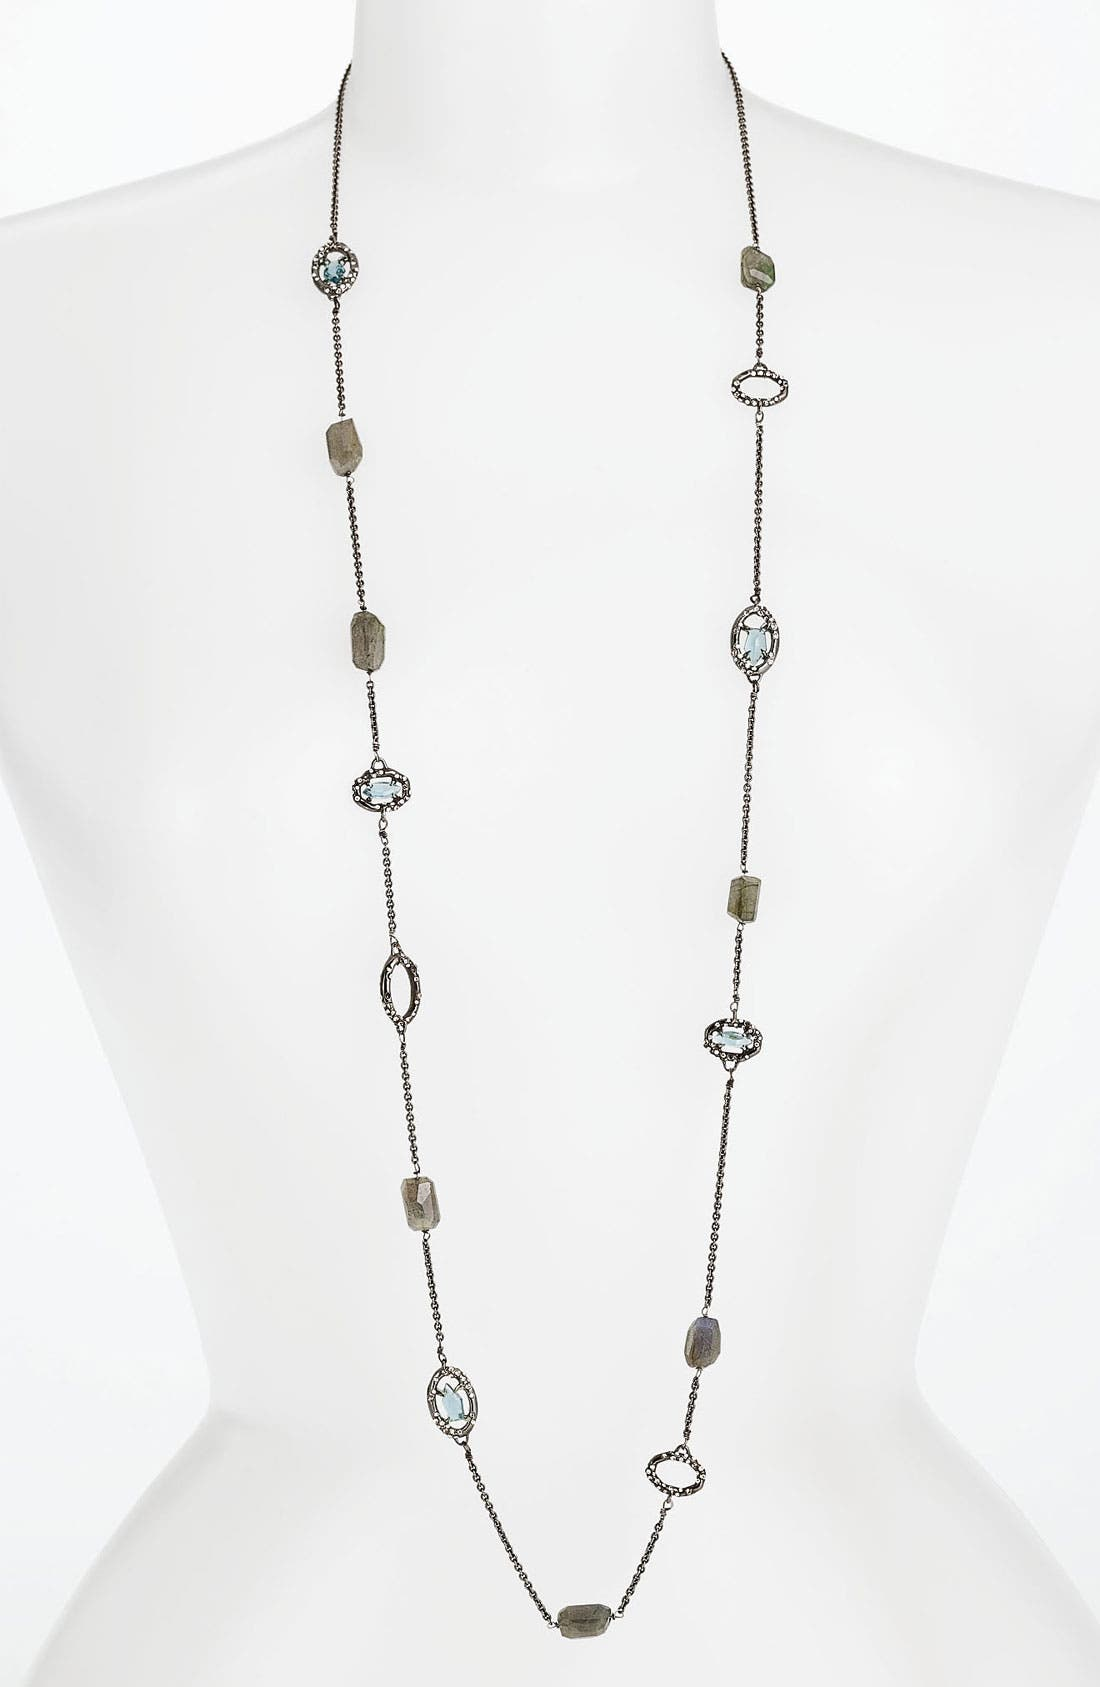 Main Image - Alexis Bittar 'Miss Havisham - Deco' Long Station Necklace (Nordstrom Exclusive)